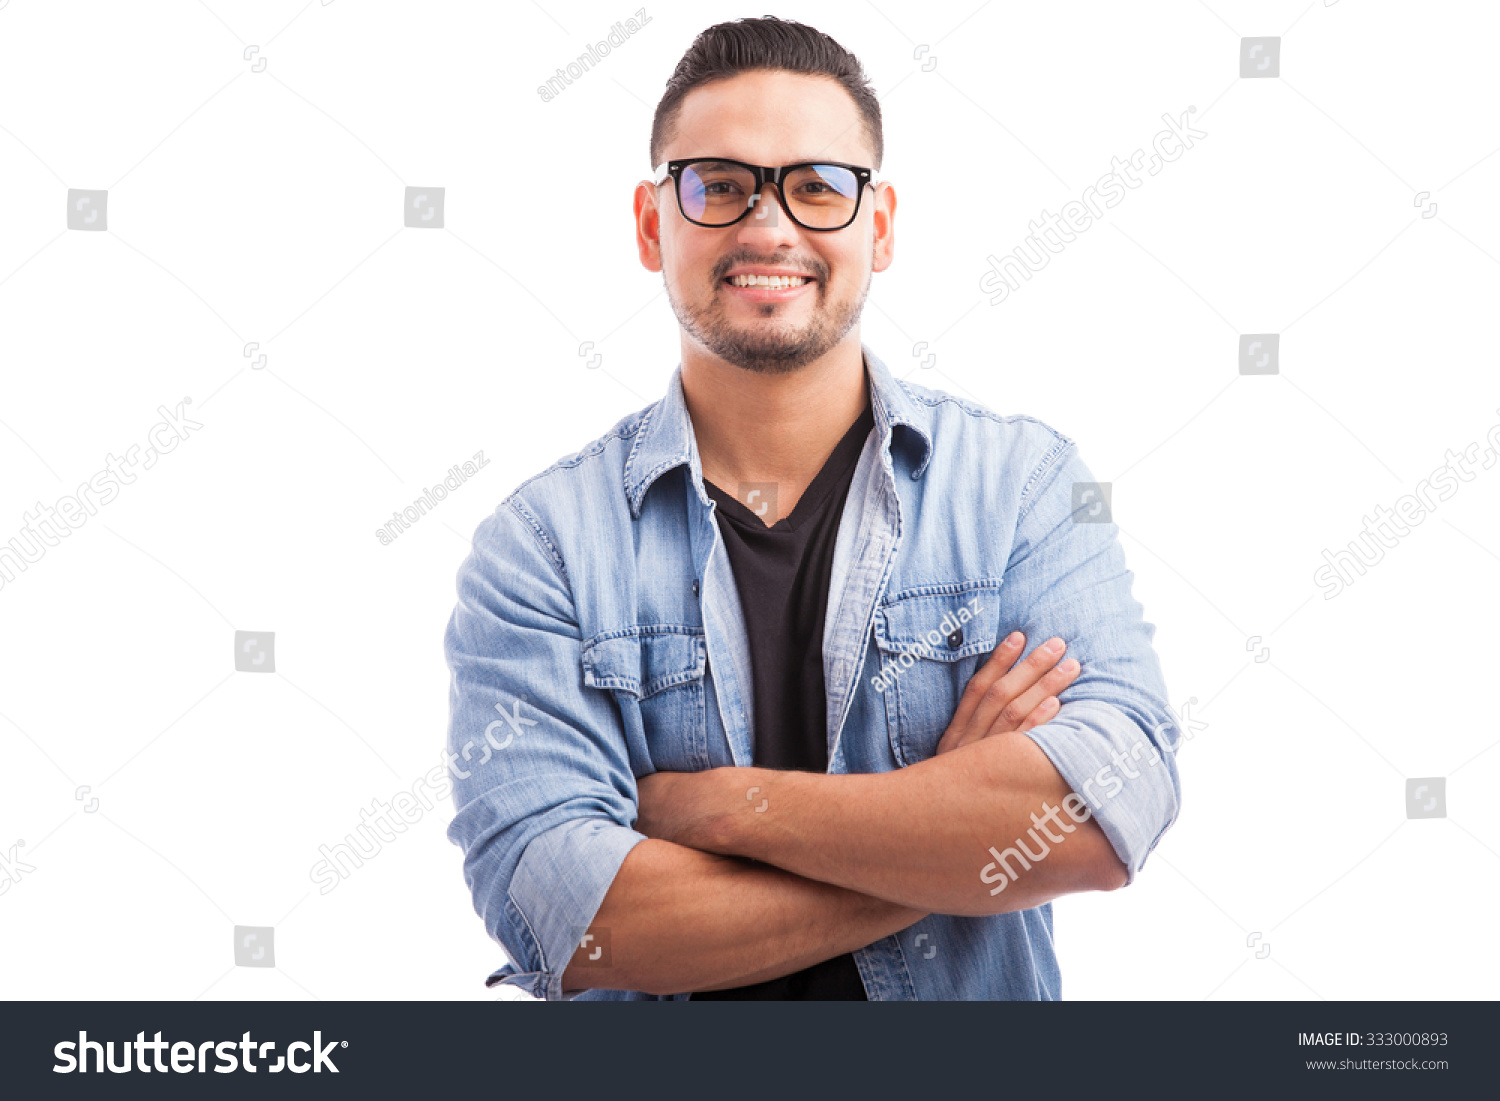 Latin Hipster Guy Wearing Glasses His Stock Photo ...